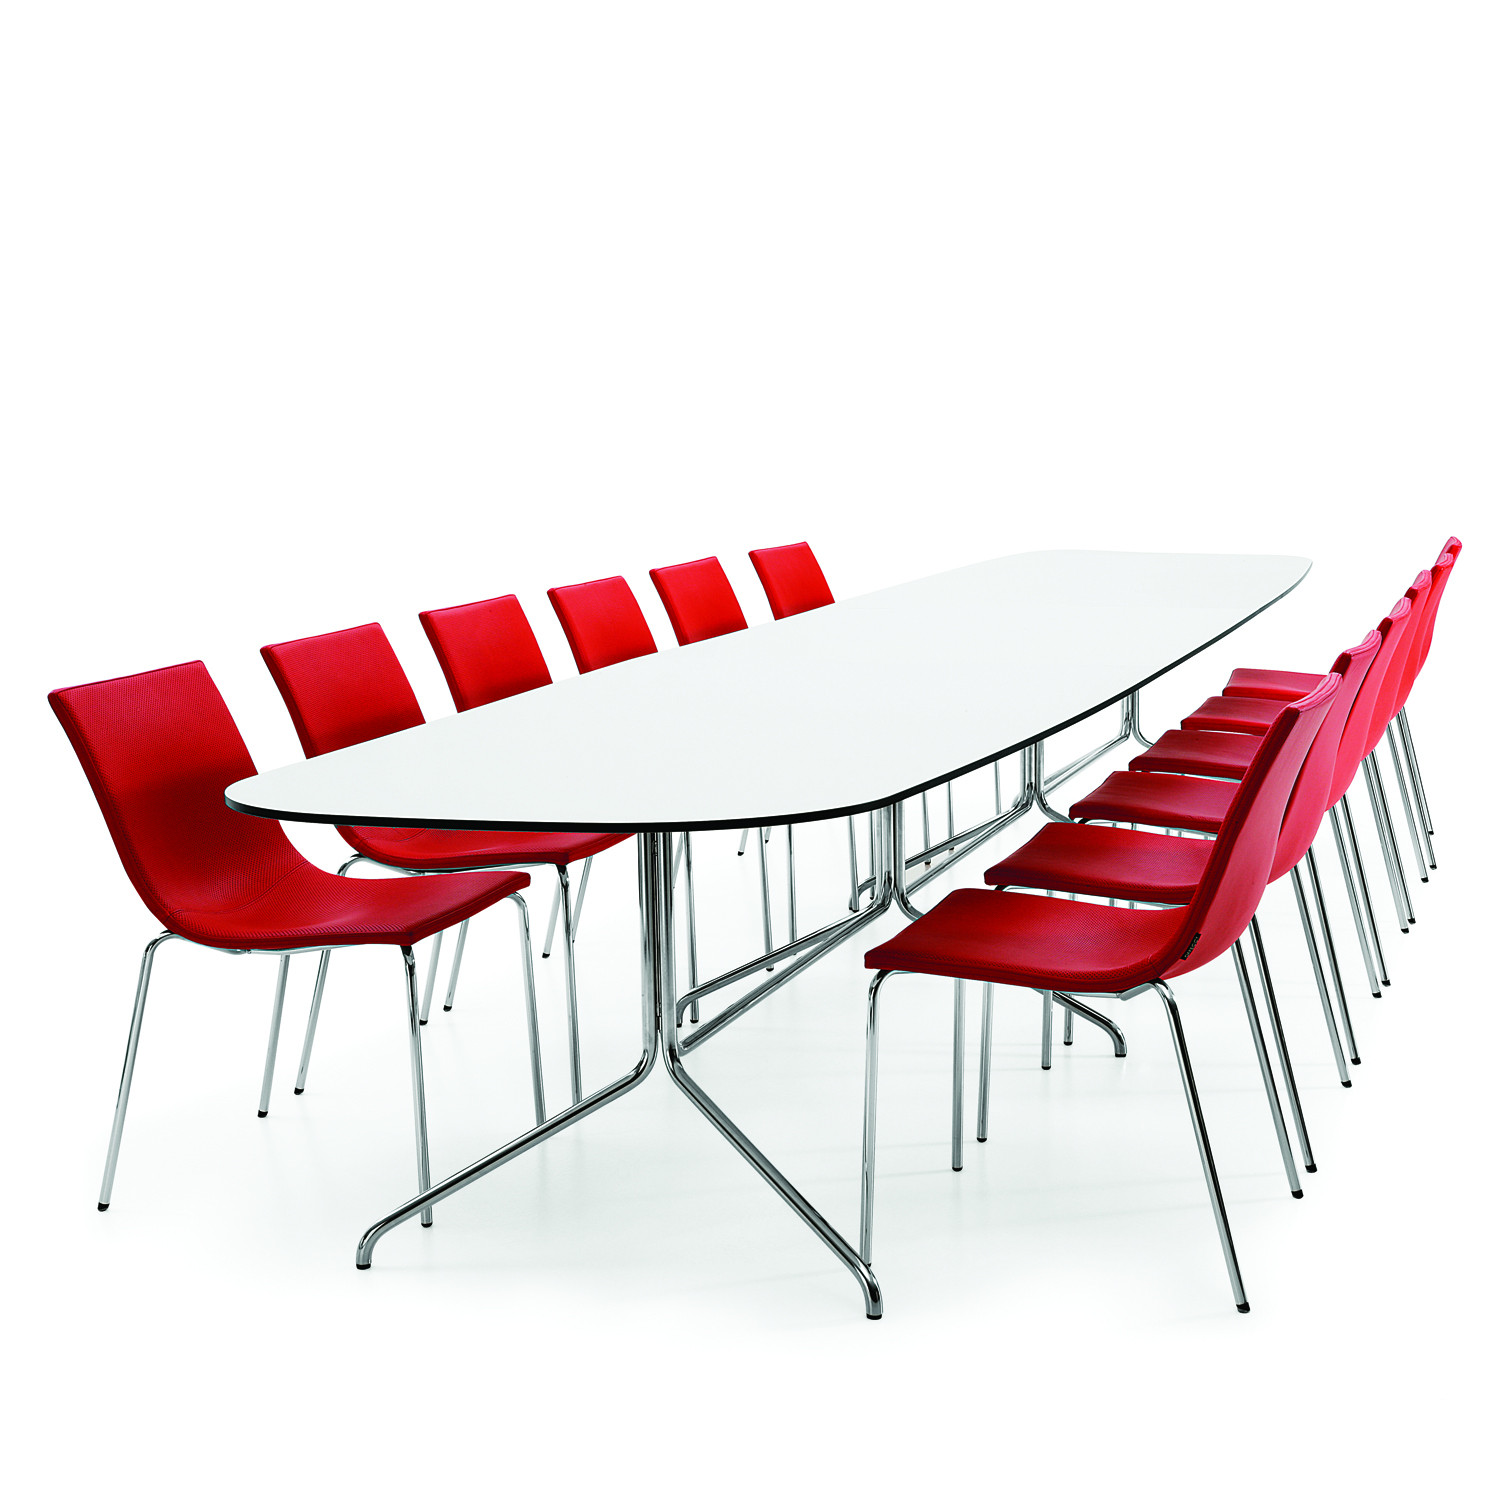 Bond XL Meeting Table